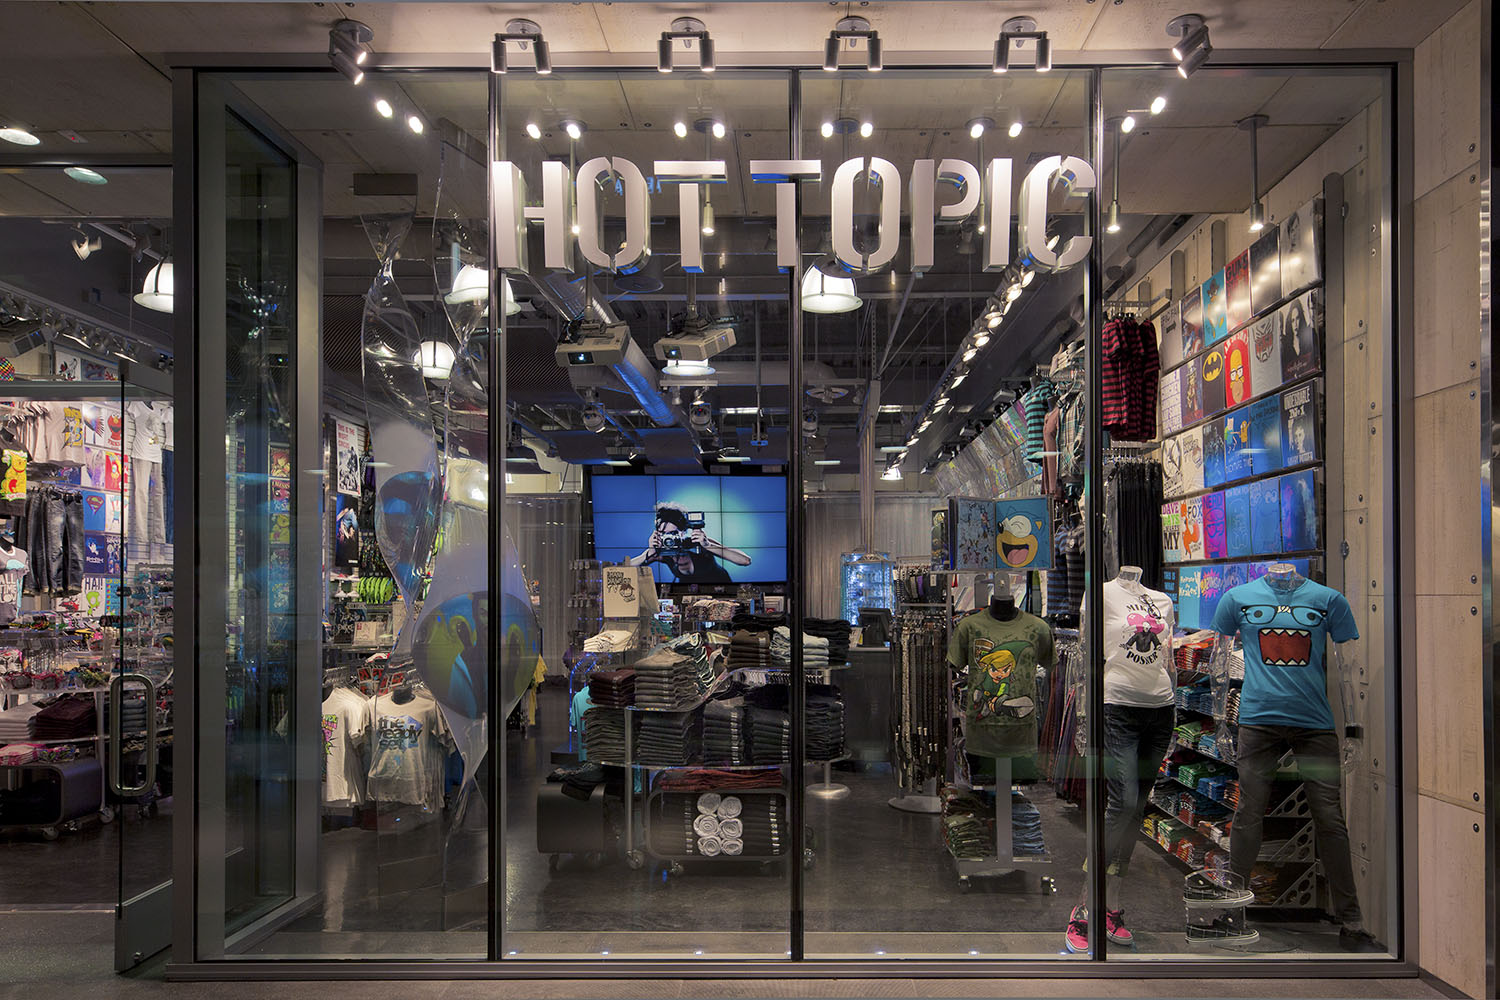 012-3680-002-Hot Topic.jpg